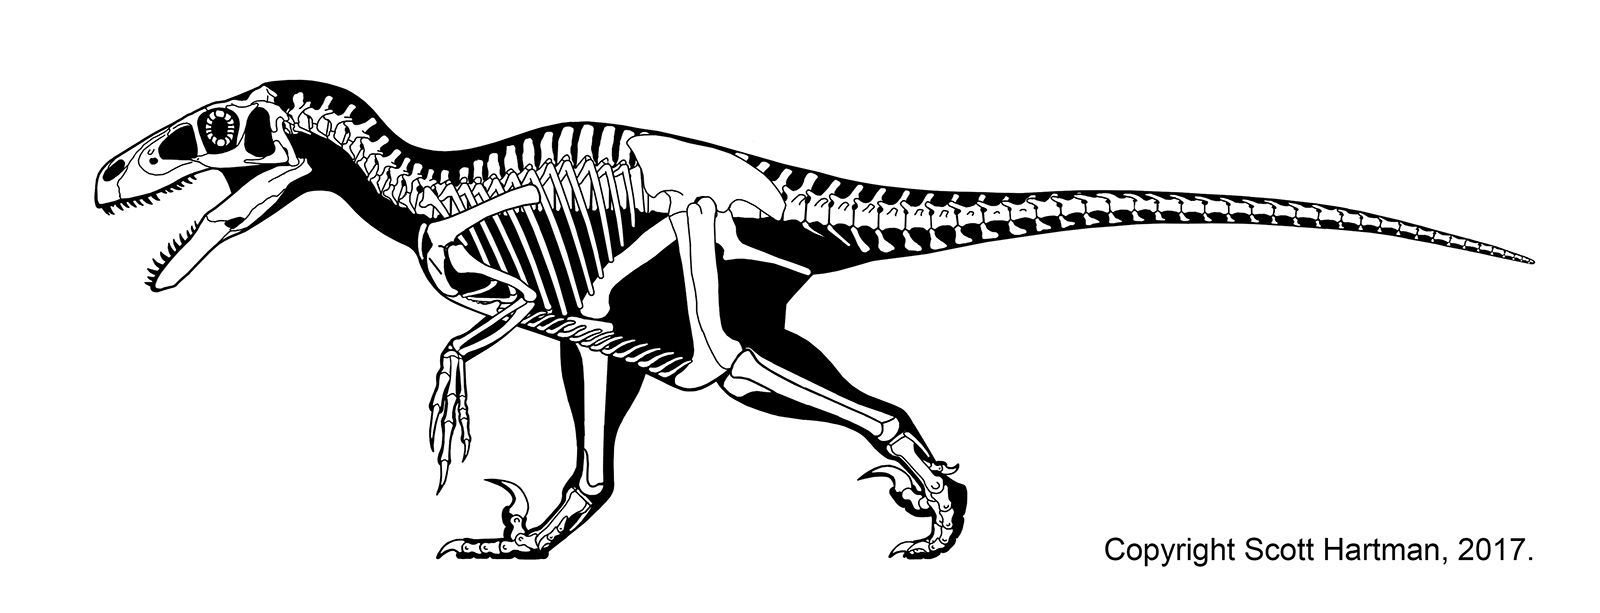 Here is  Utahraptor , in all of its crazy, robust goodness!